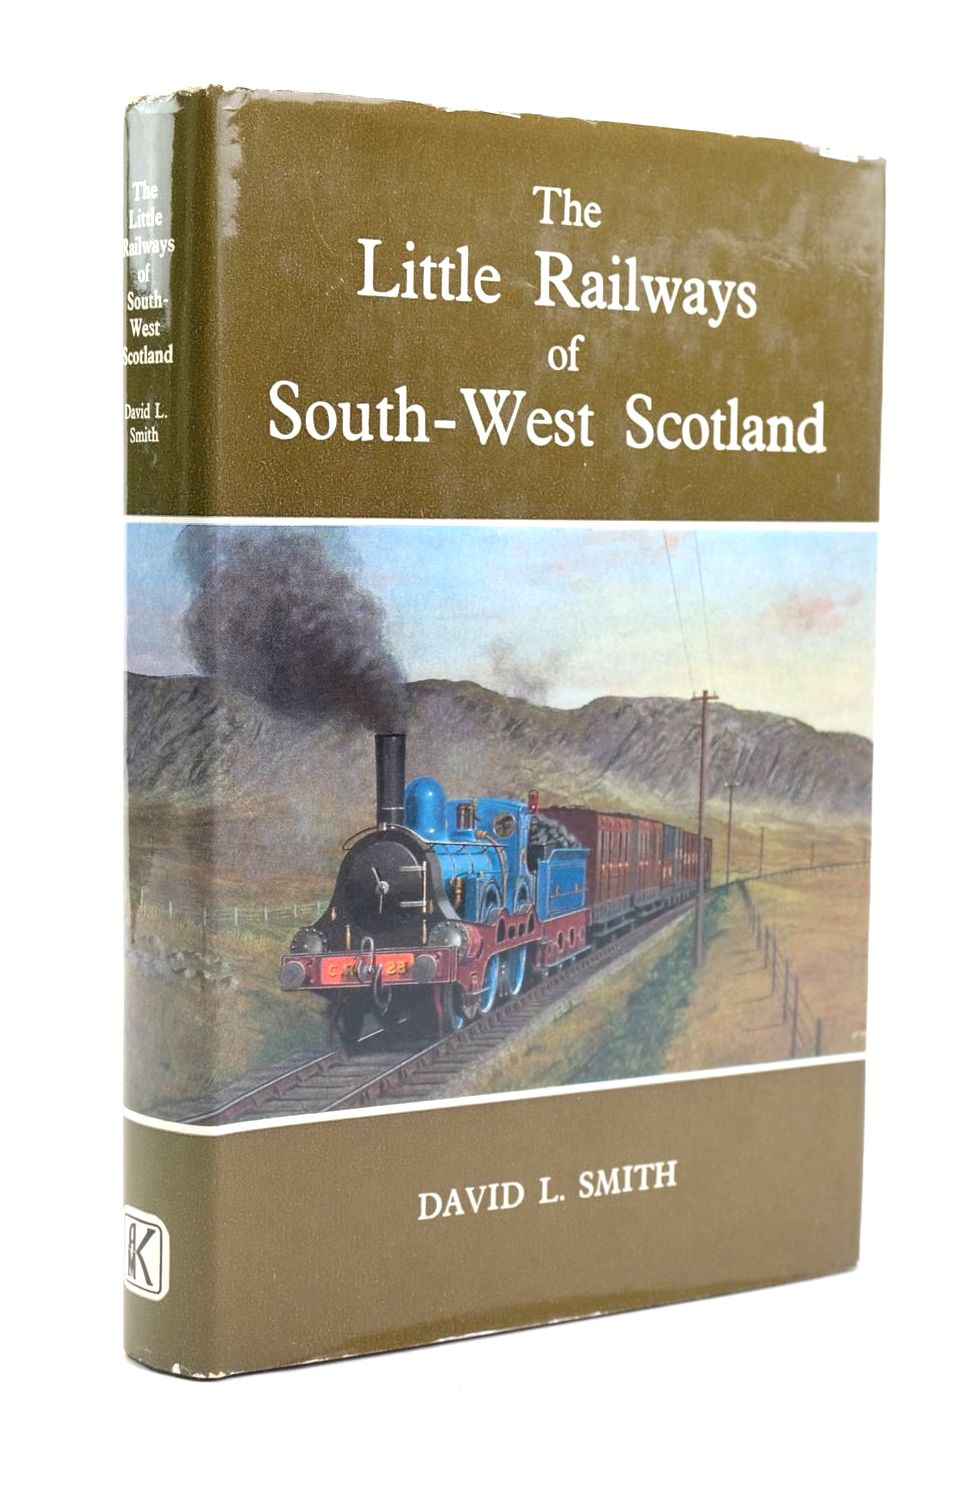 Photo of THE LITTLE RAILWAYS OF SOUTH-WEST SCOTLAND written by Smith, David L. published by Augustus M. Kelley (STOCK CODE: 1319934)  for sale by Stella & Rose's Books